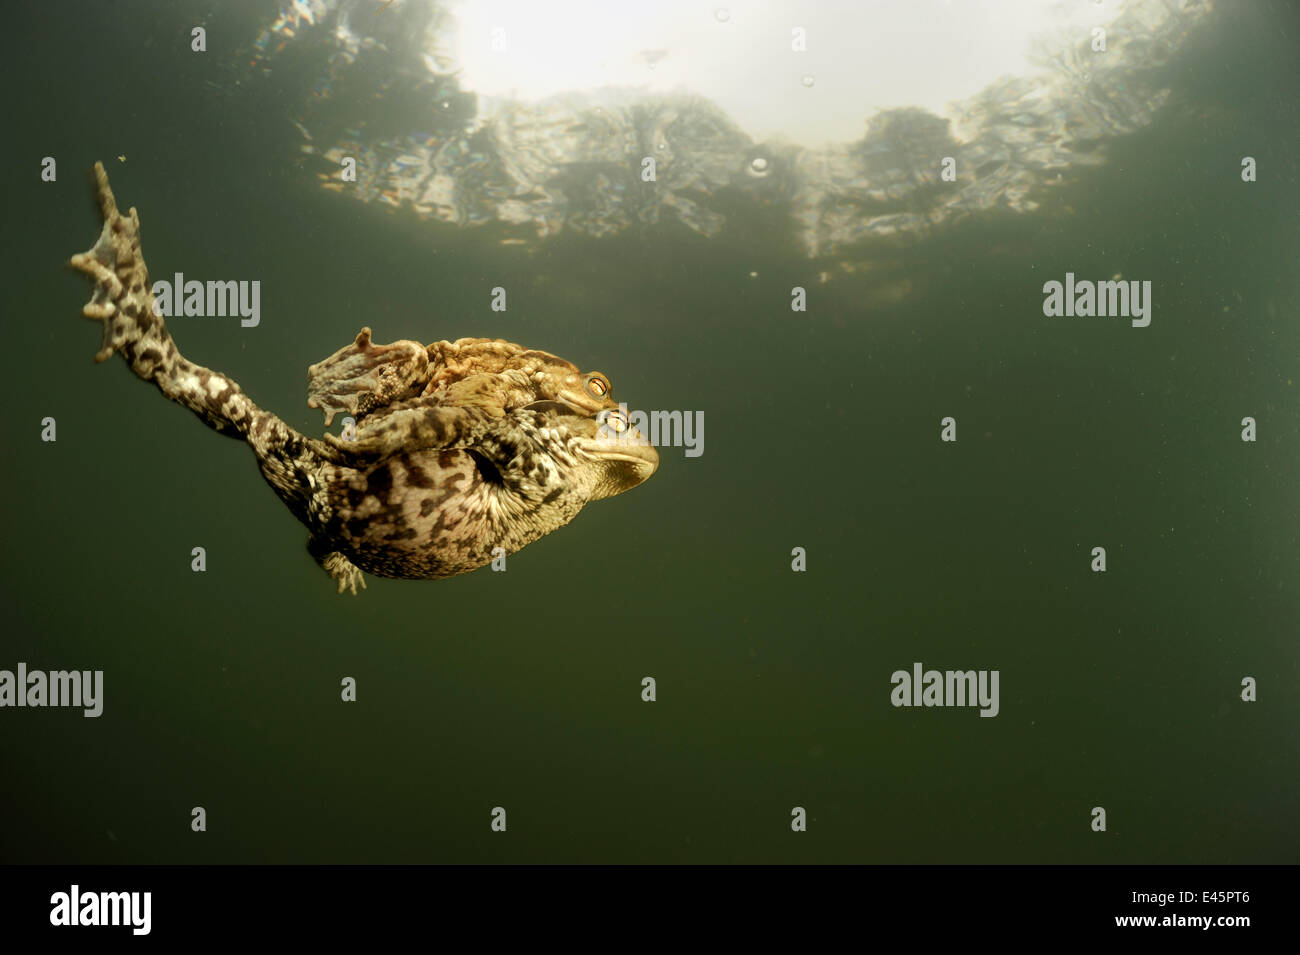 Pair of Common european toads (Bufo bufo) swimming together in pond, Germany - Stock Image